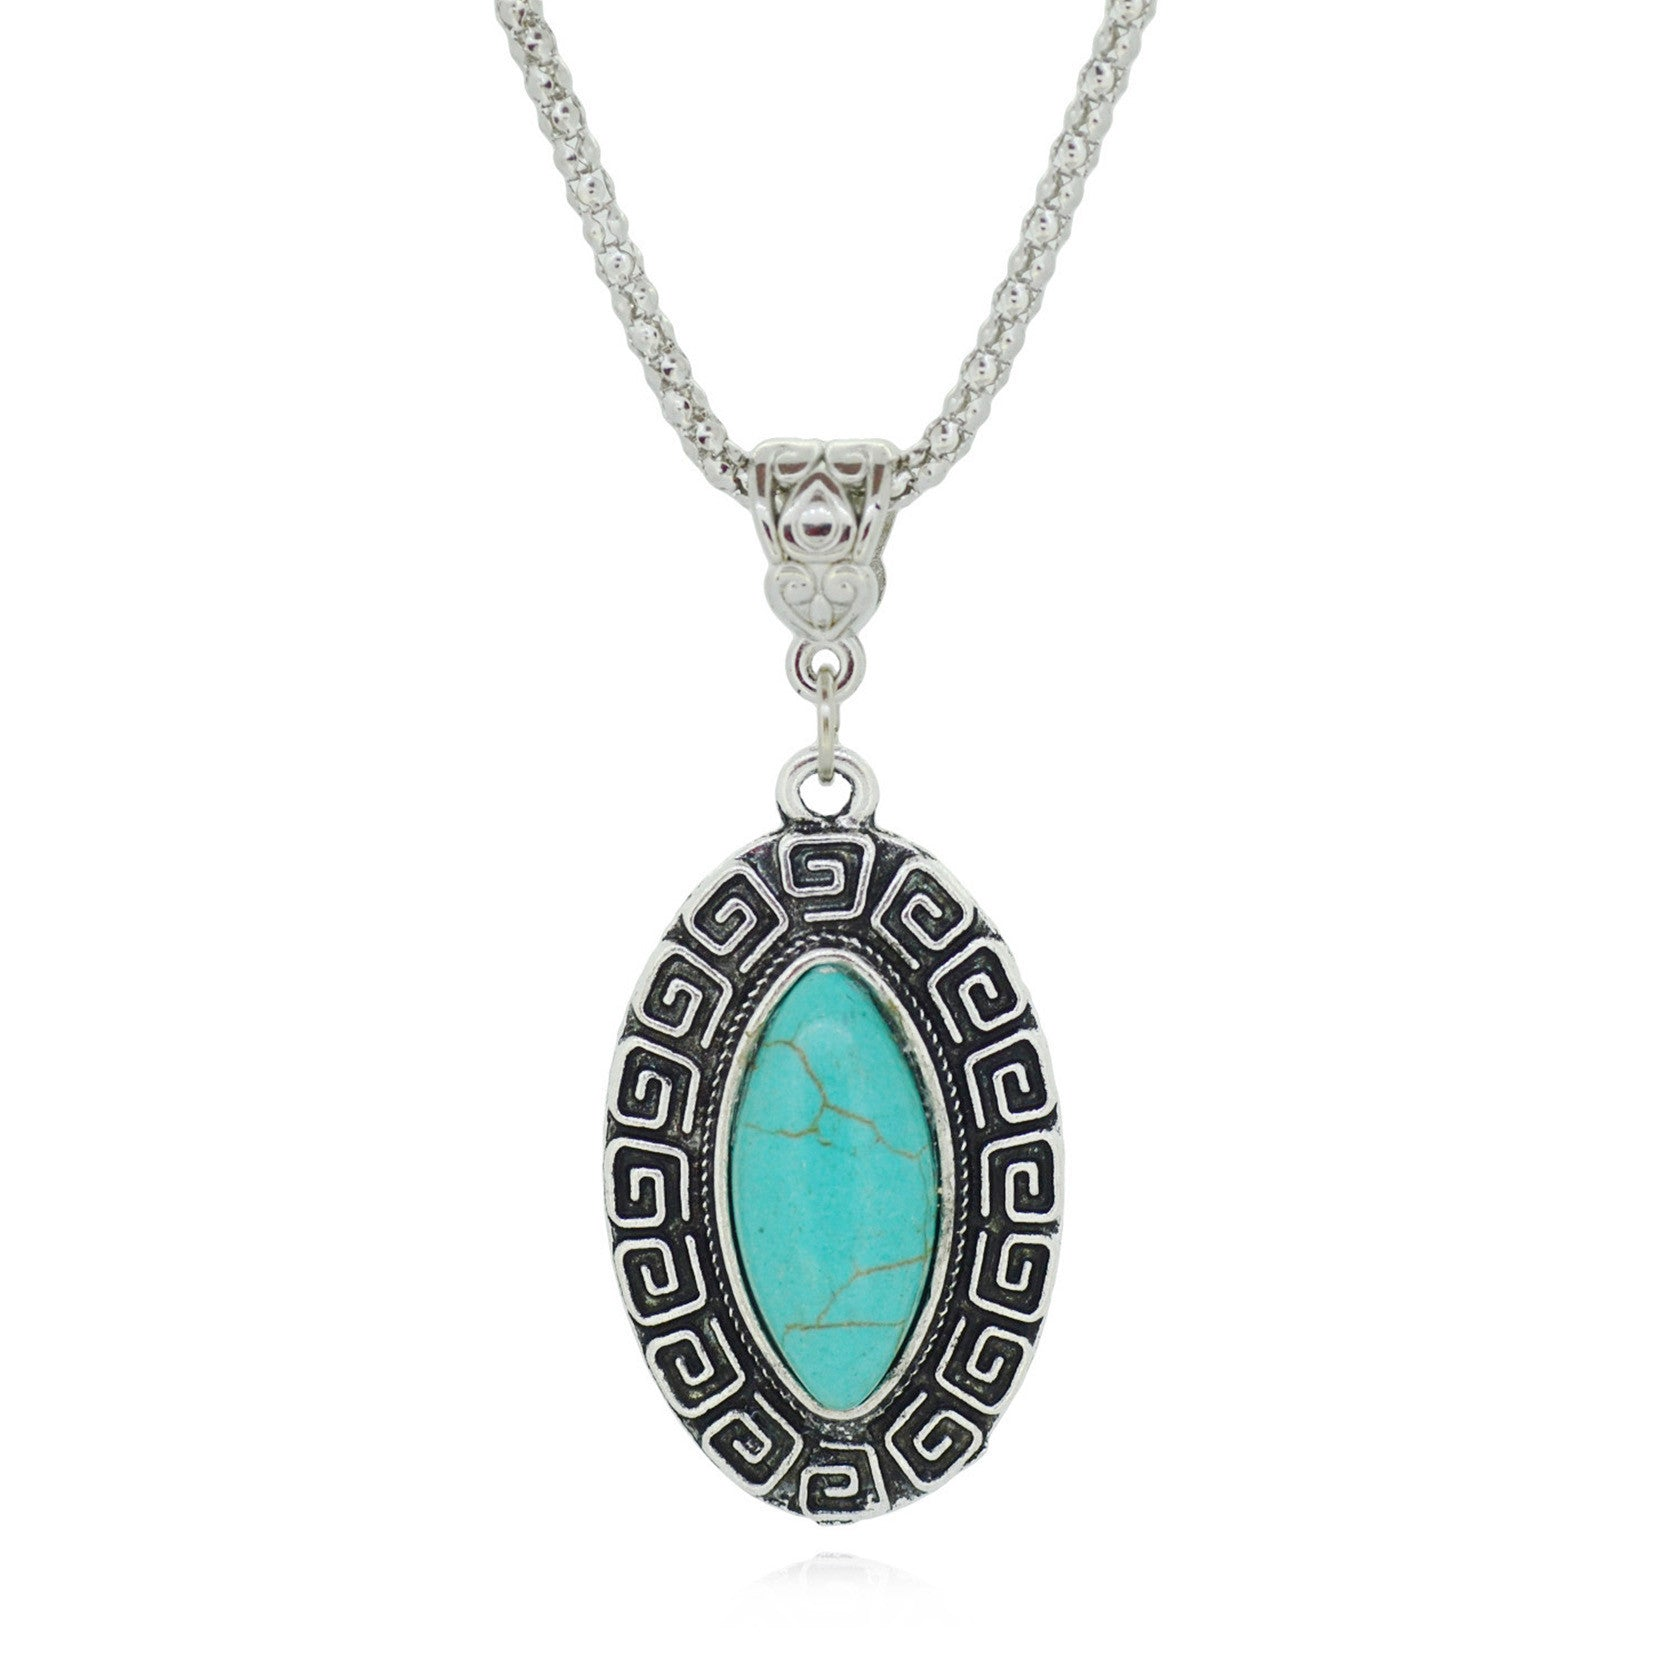 Vintage Tibetan Silver Color Jewelry Fashion Turquoise Collares Summer Style Statement Chain Necklace for Women